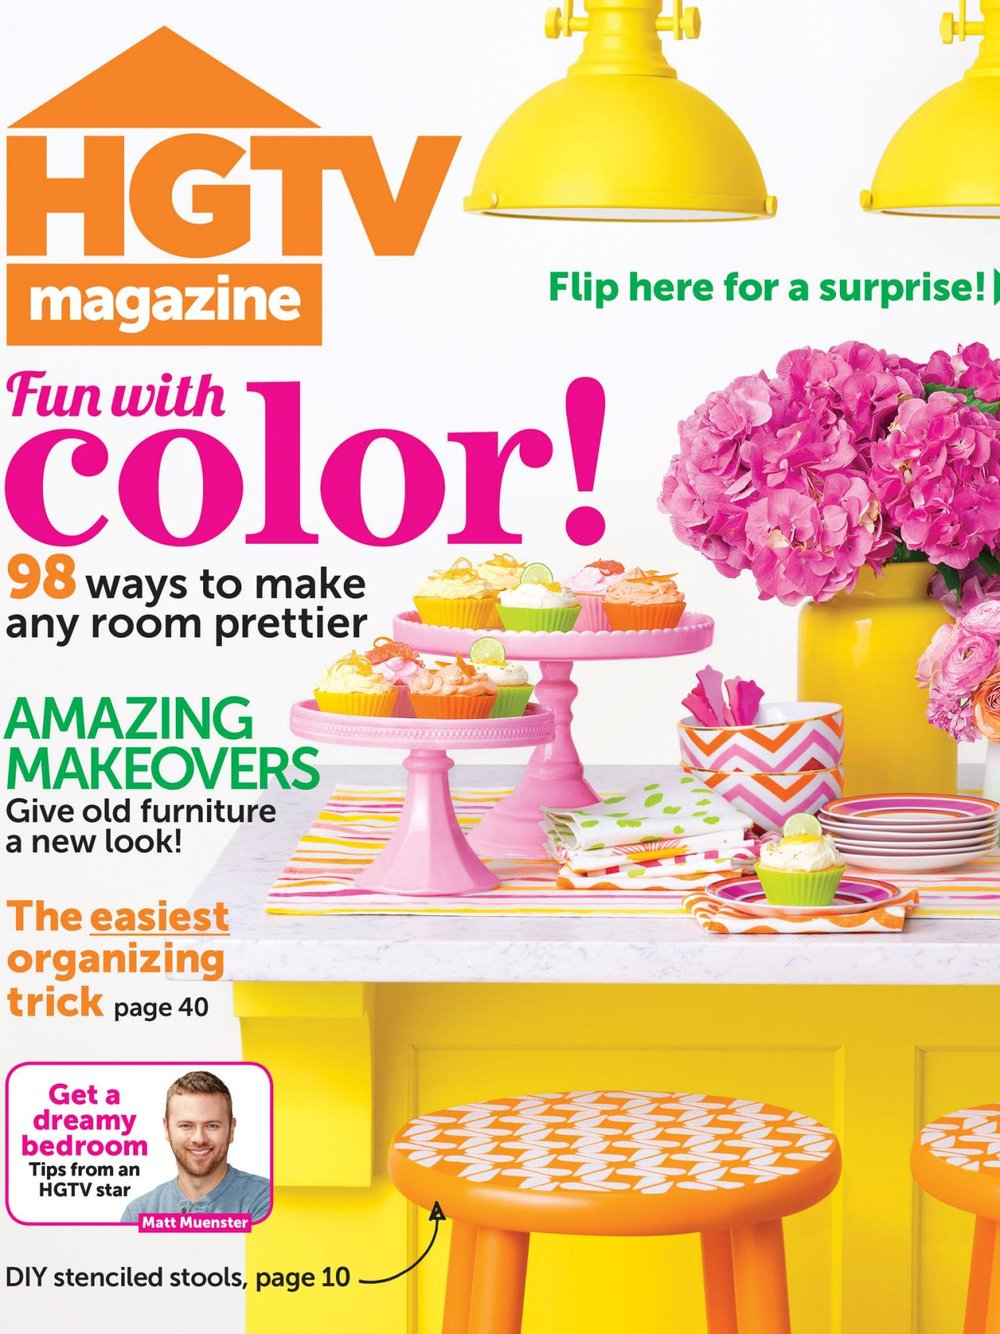 RX-HGMAG020_May-2014-Cover-3x4.jpg.rend.hgtvcom.1280.1707.jpeg